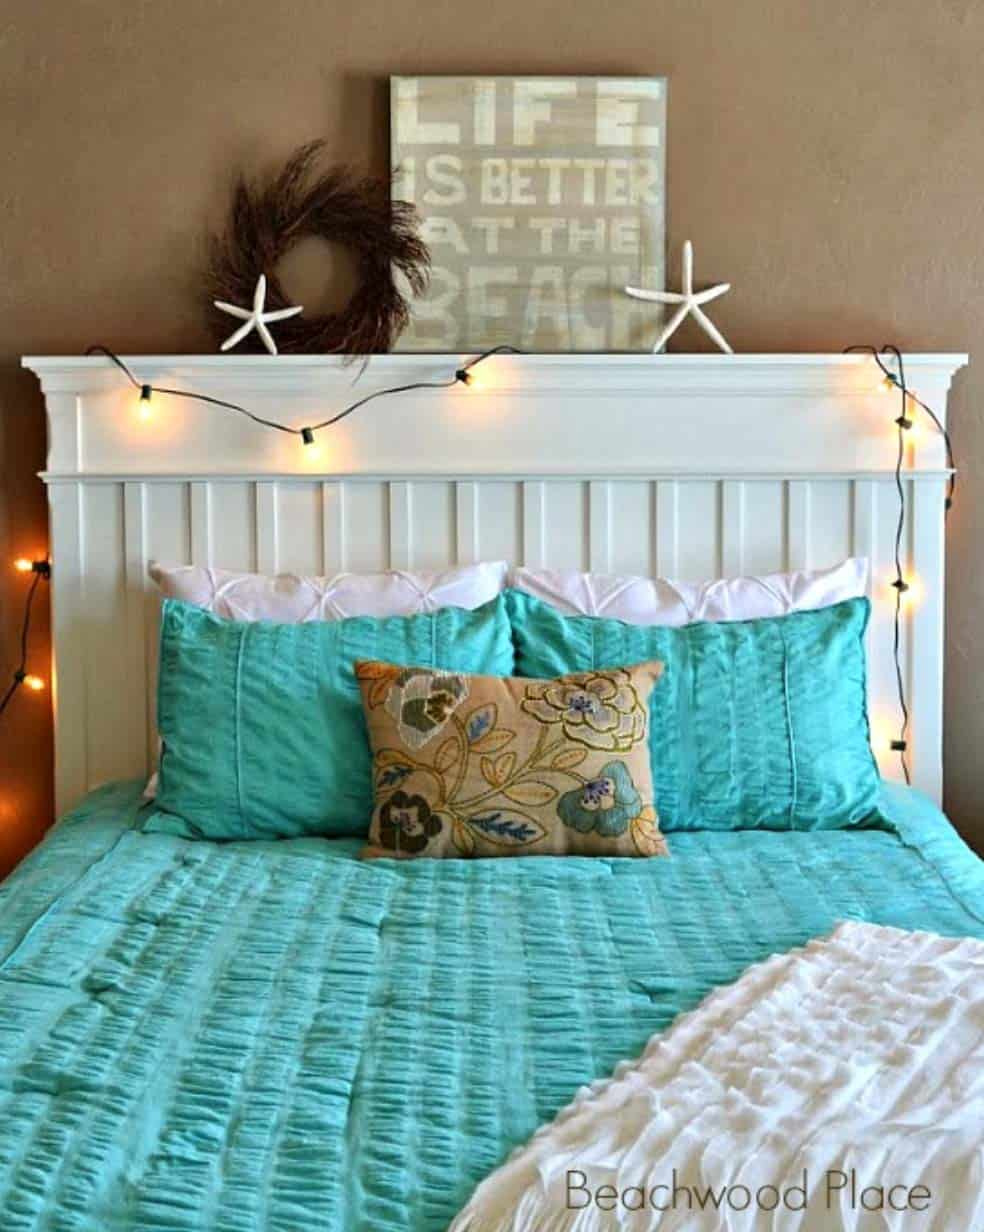 Christmas Bedroom Decorating Ideas-27-1 Kindesign